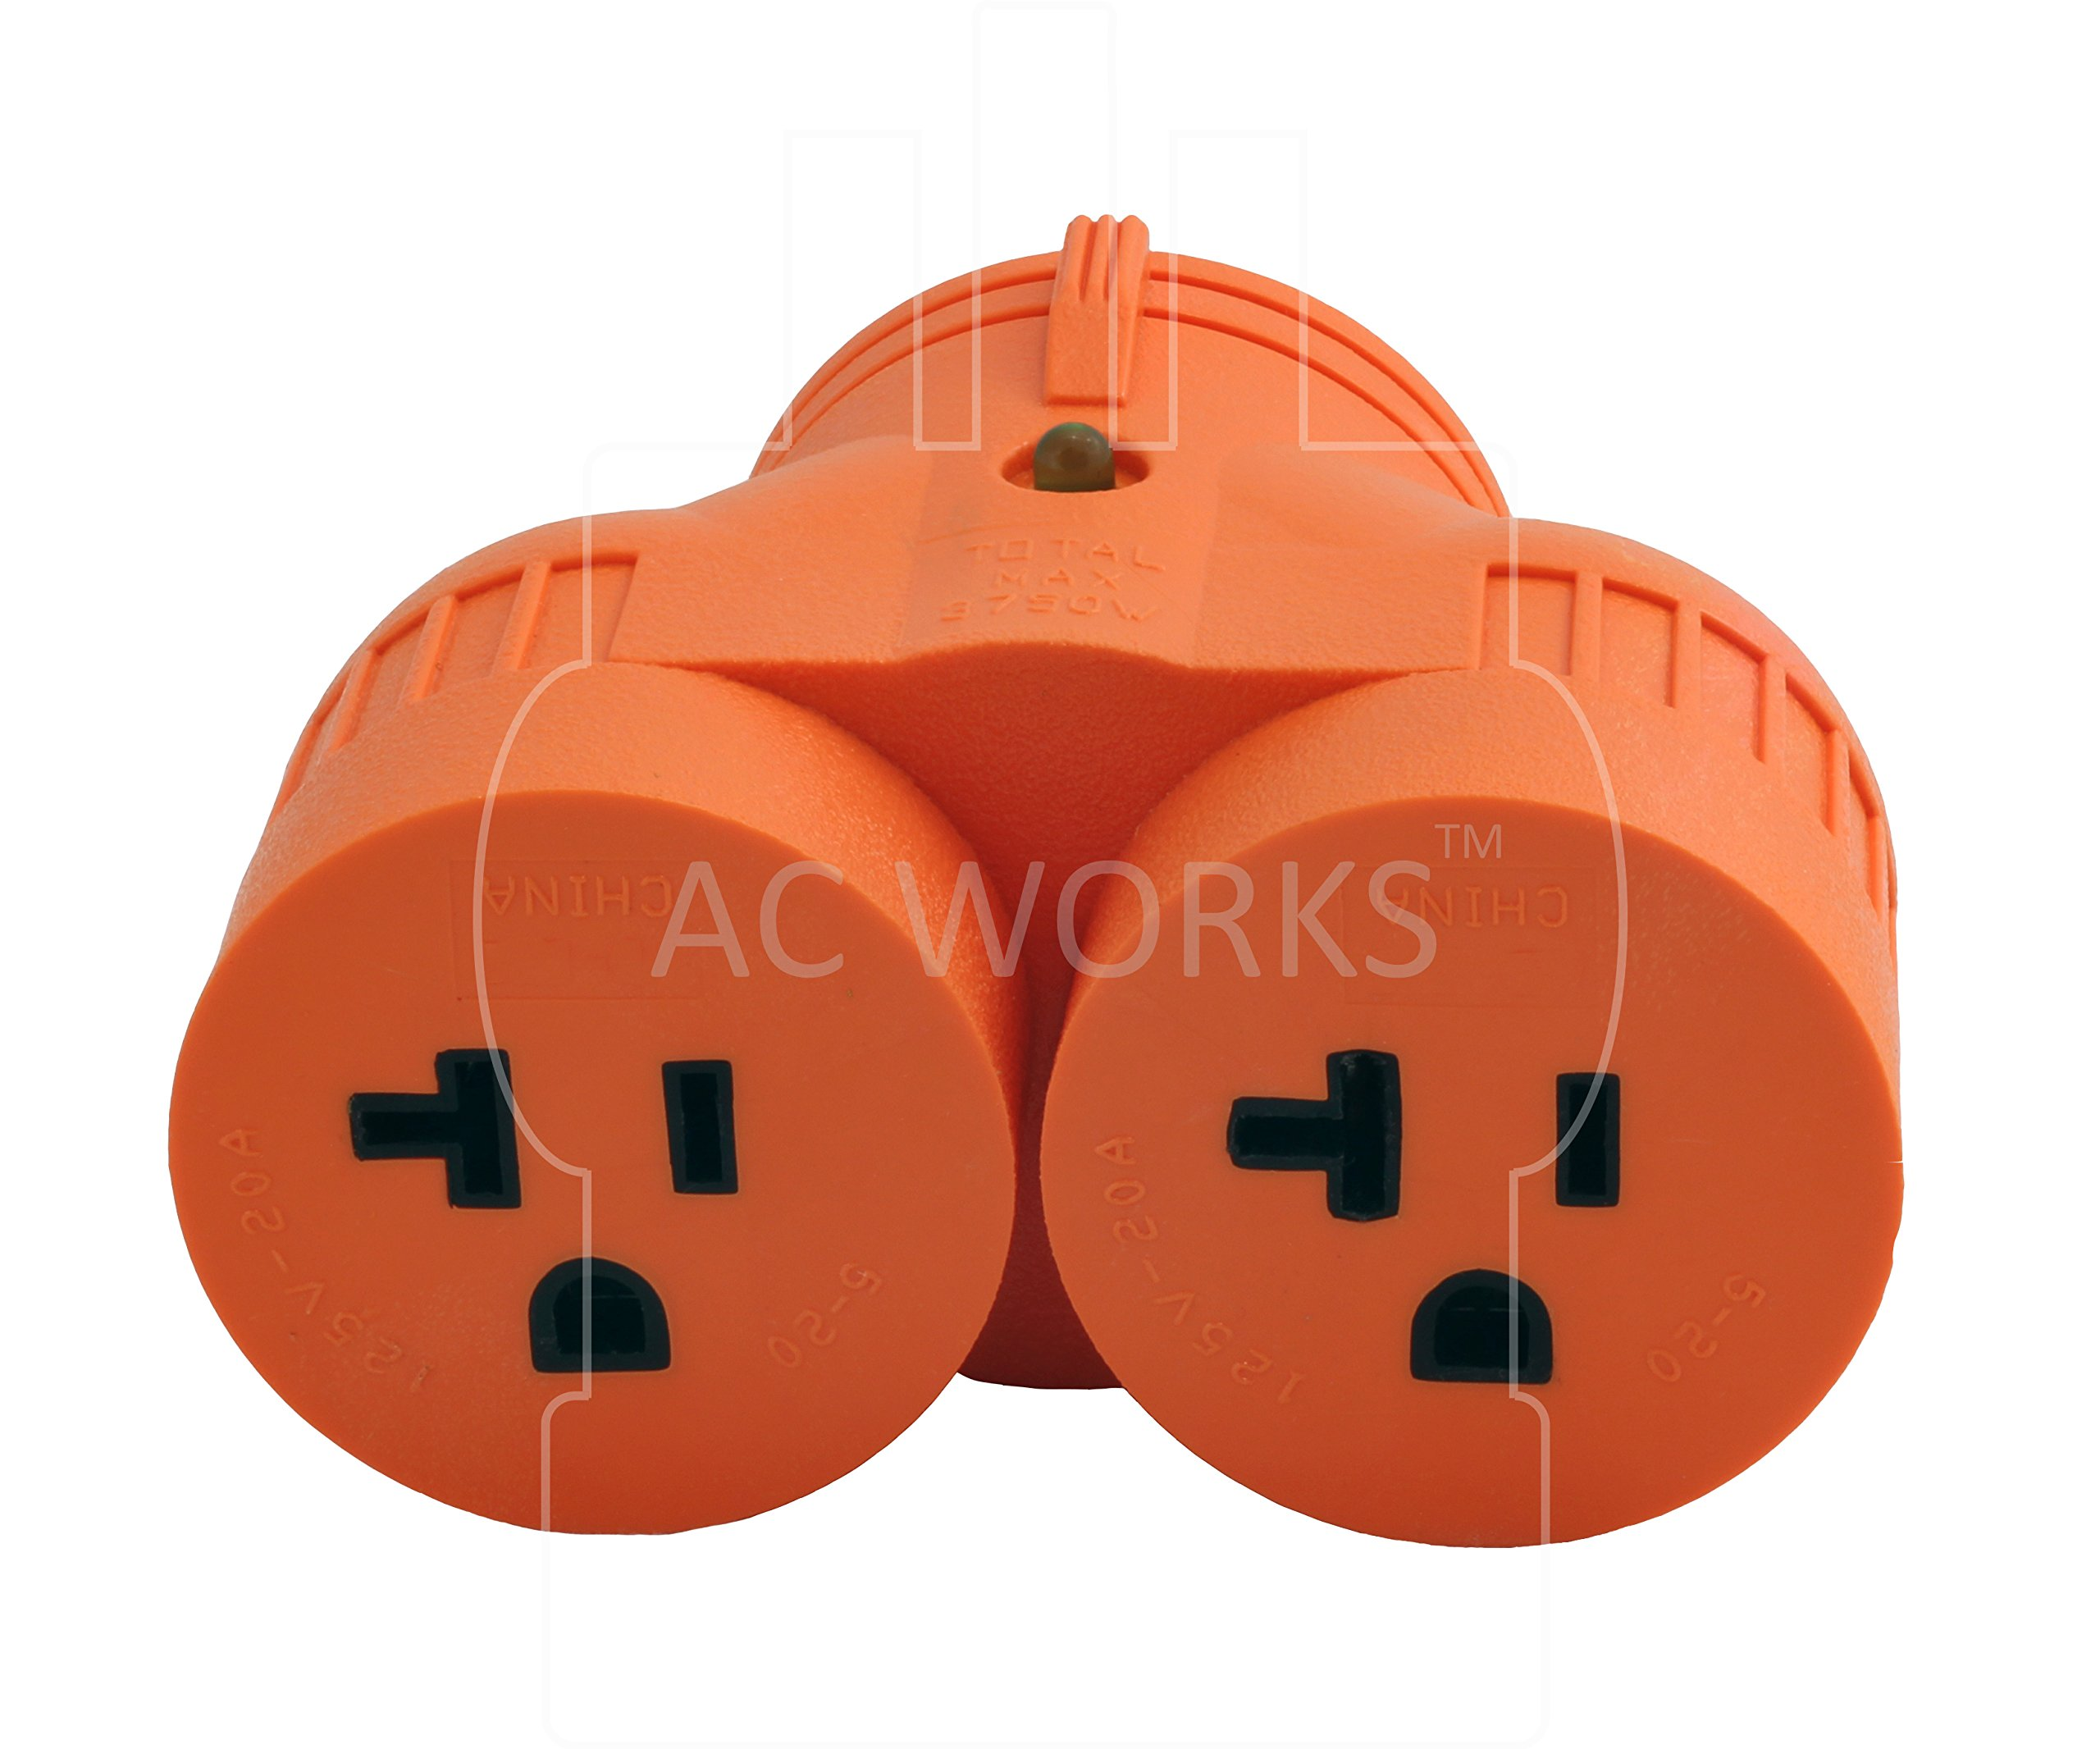 AC WORKS [ADVL1420520] Generator V-DUO Adapter NEMA L14-20P 20Amp 4-Prong Locking Plug to (2) 15/20Amp Household Connectors by AC WORKS (Image #4)